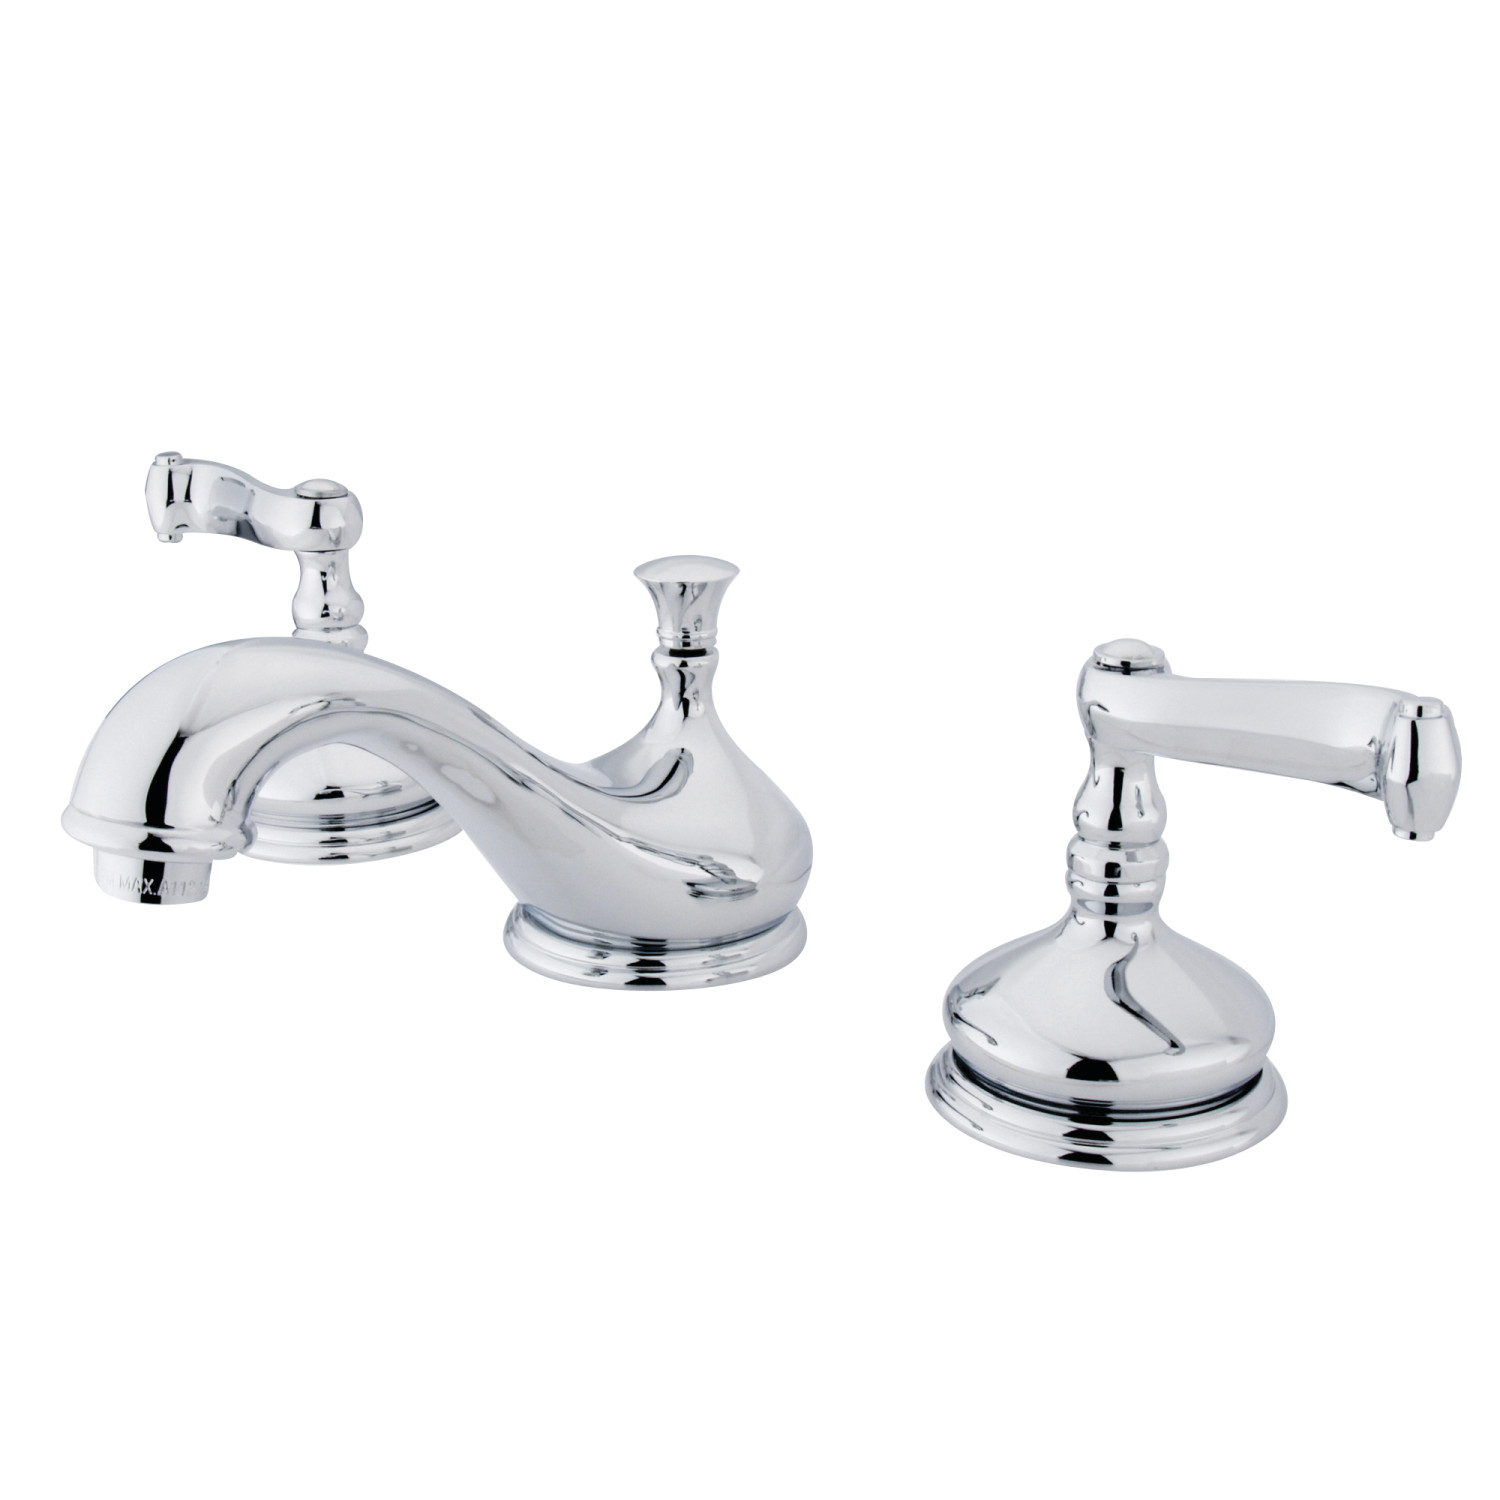 Traditional Two-Handle Three-Hole Deck Mounted Widespread Bathroom Faucet with Brass Pop-Up in Polished Chrome with 4 Color Option